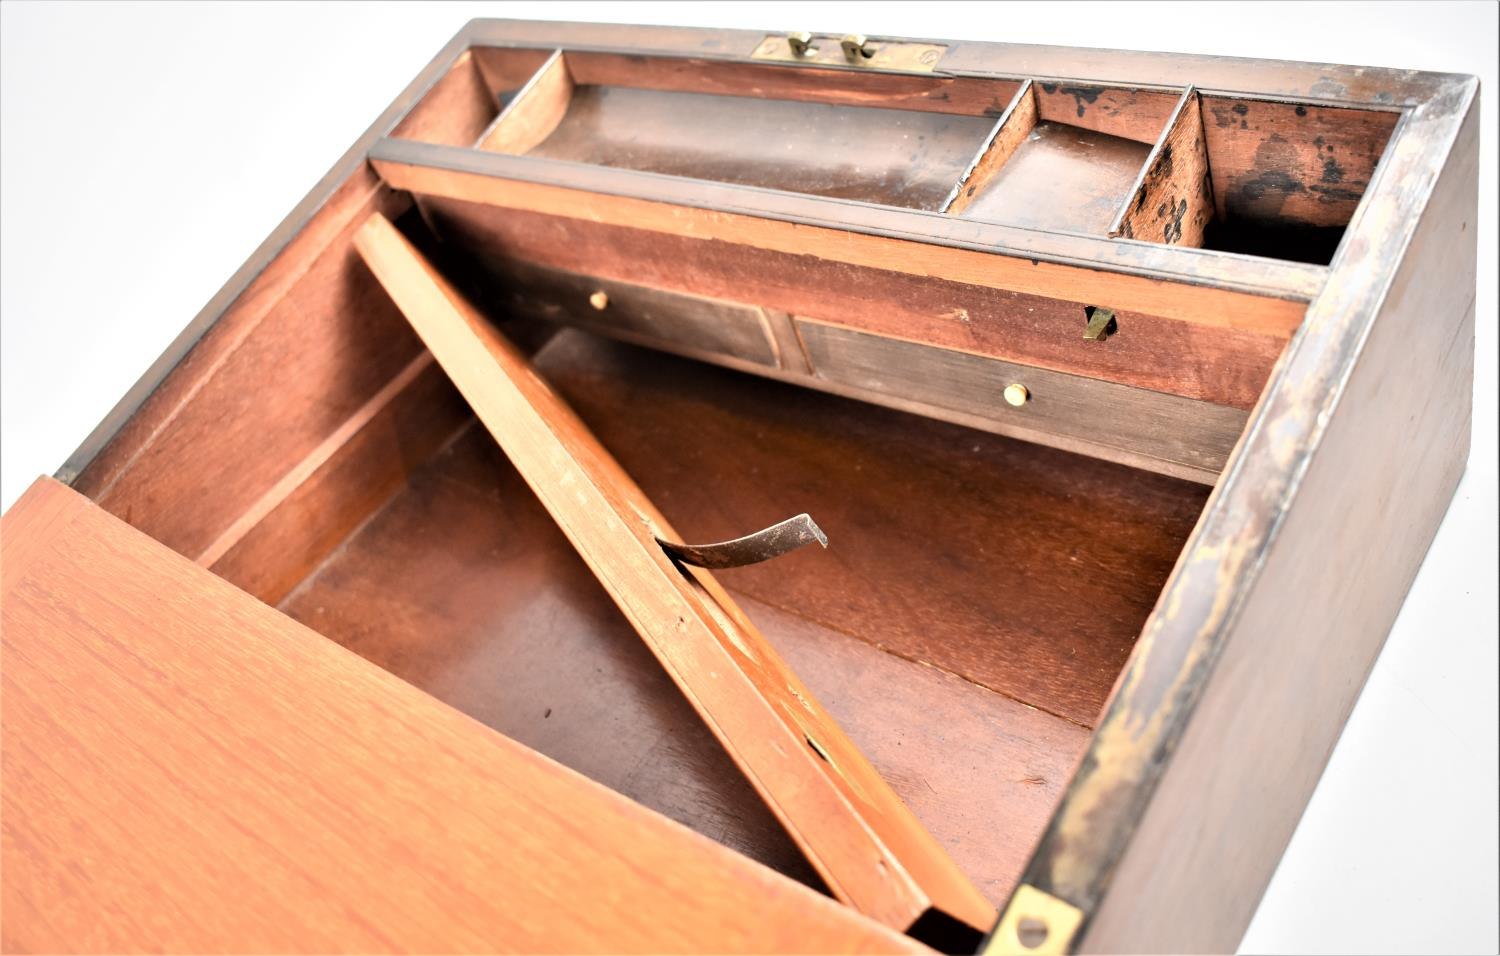 A Late 19th Century Burr Walnut Writing Slope with Tunbridge Style Banding Inlay and Brass - Image 5 of 5